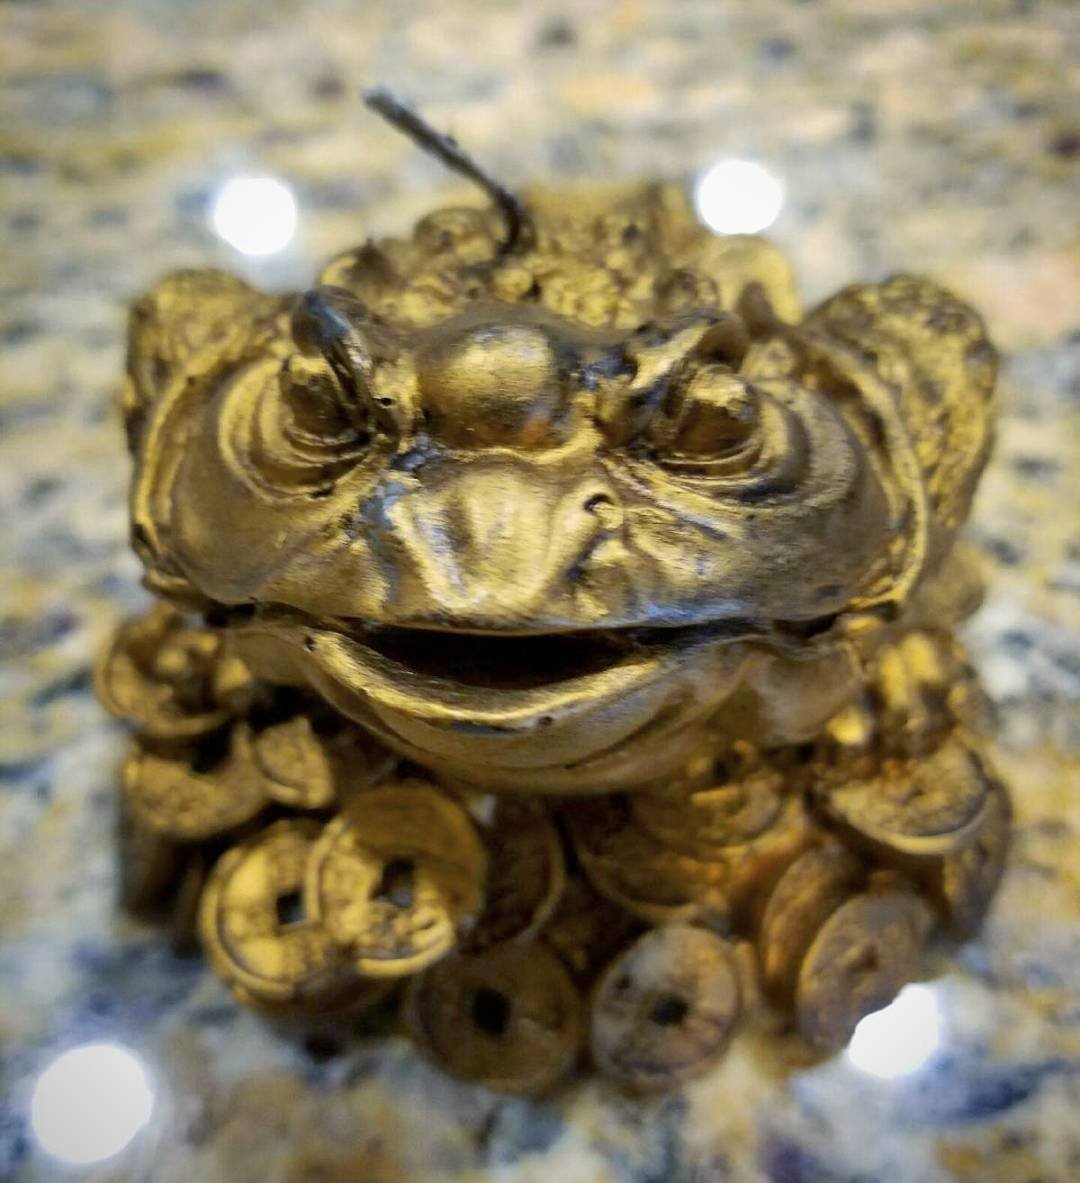 The Money Toad